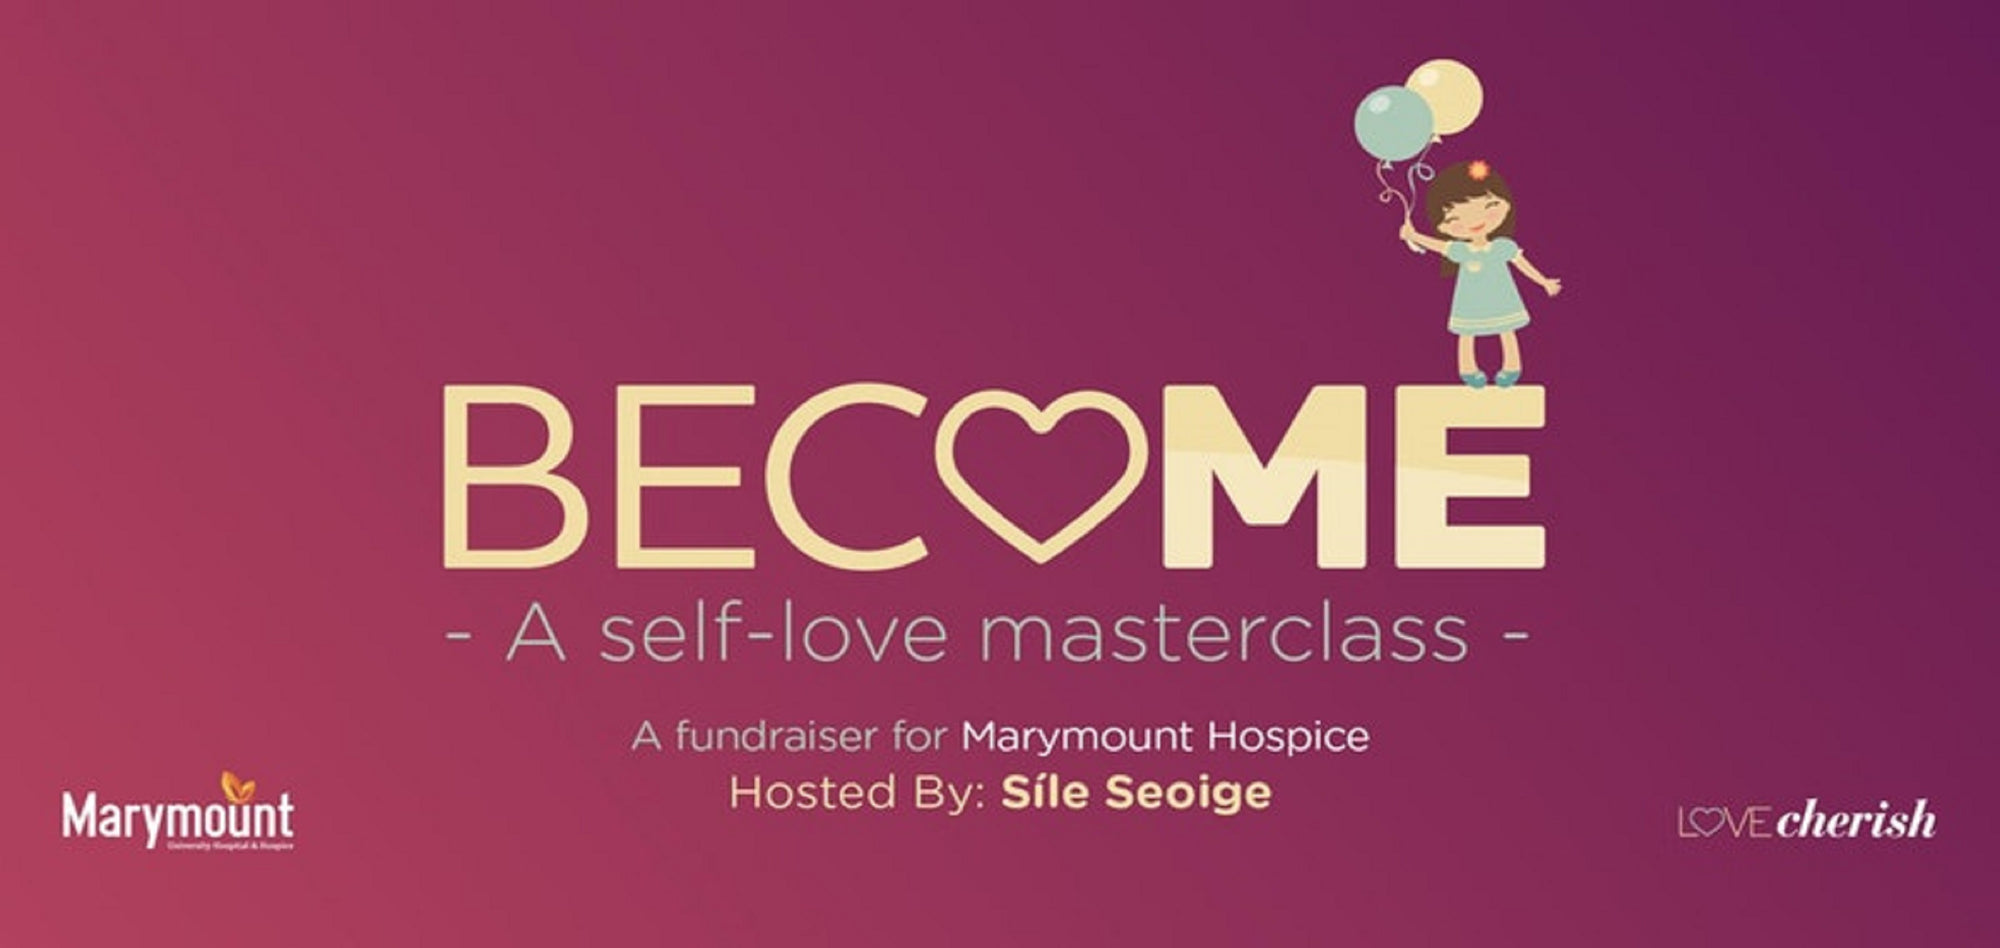 Become Self Love Masterclass Event Raises over €24,553!